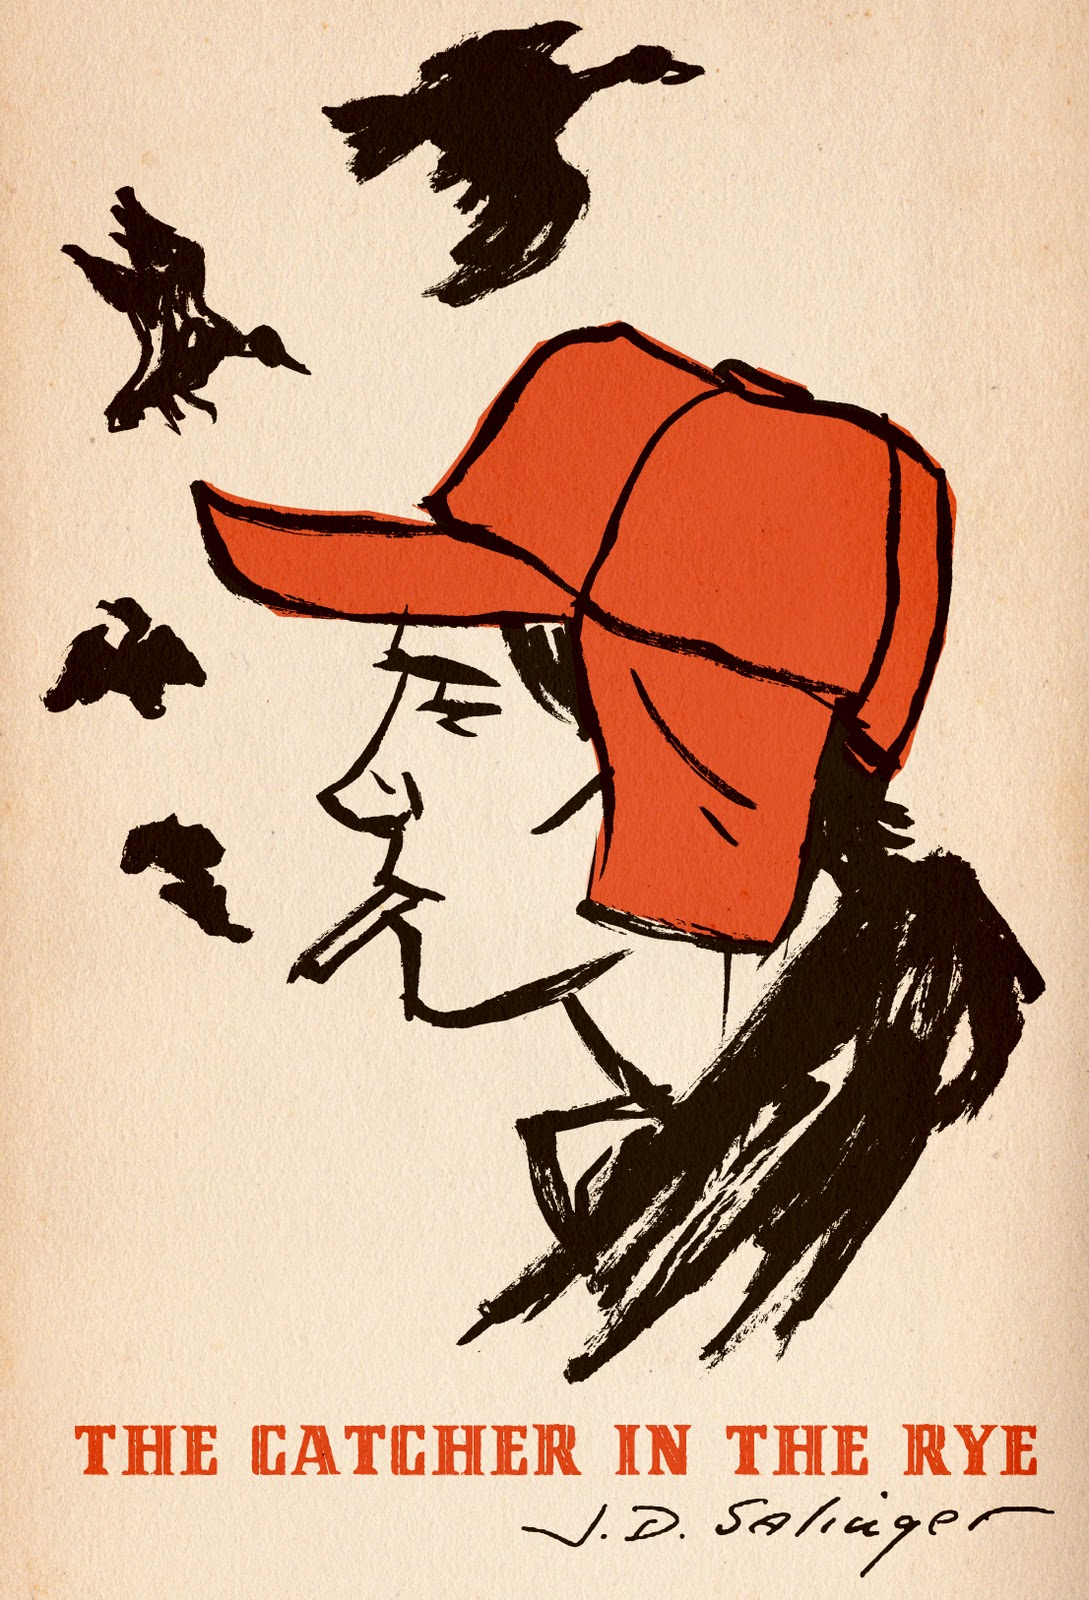 The eternal adolescent voice of The Catcher in the Rye, in one passage